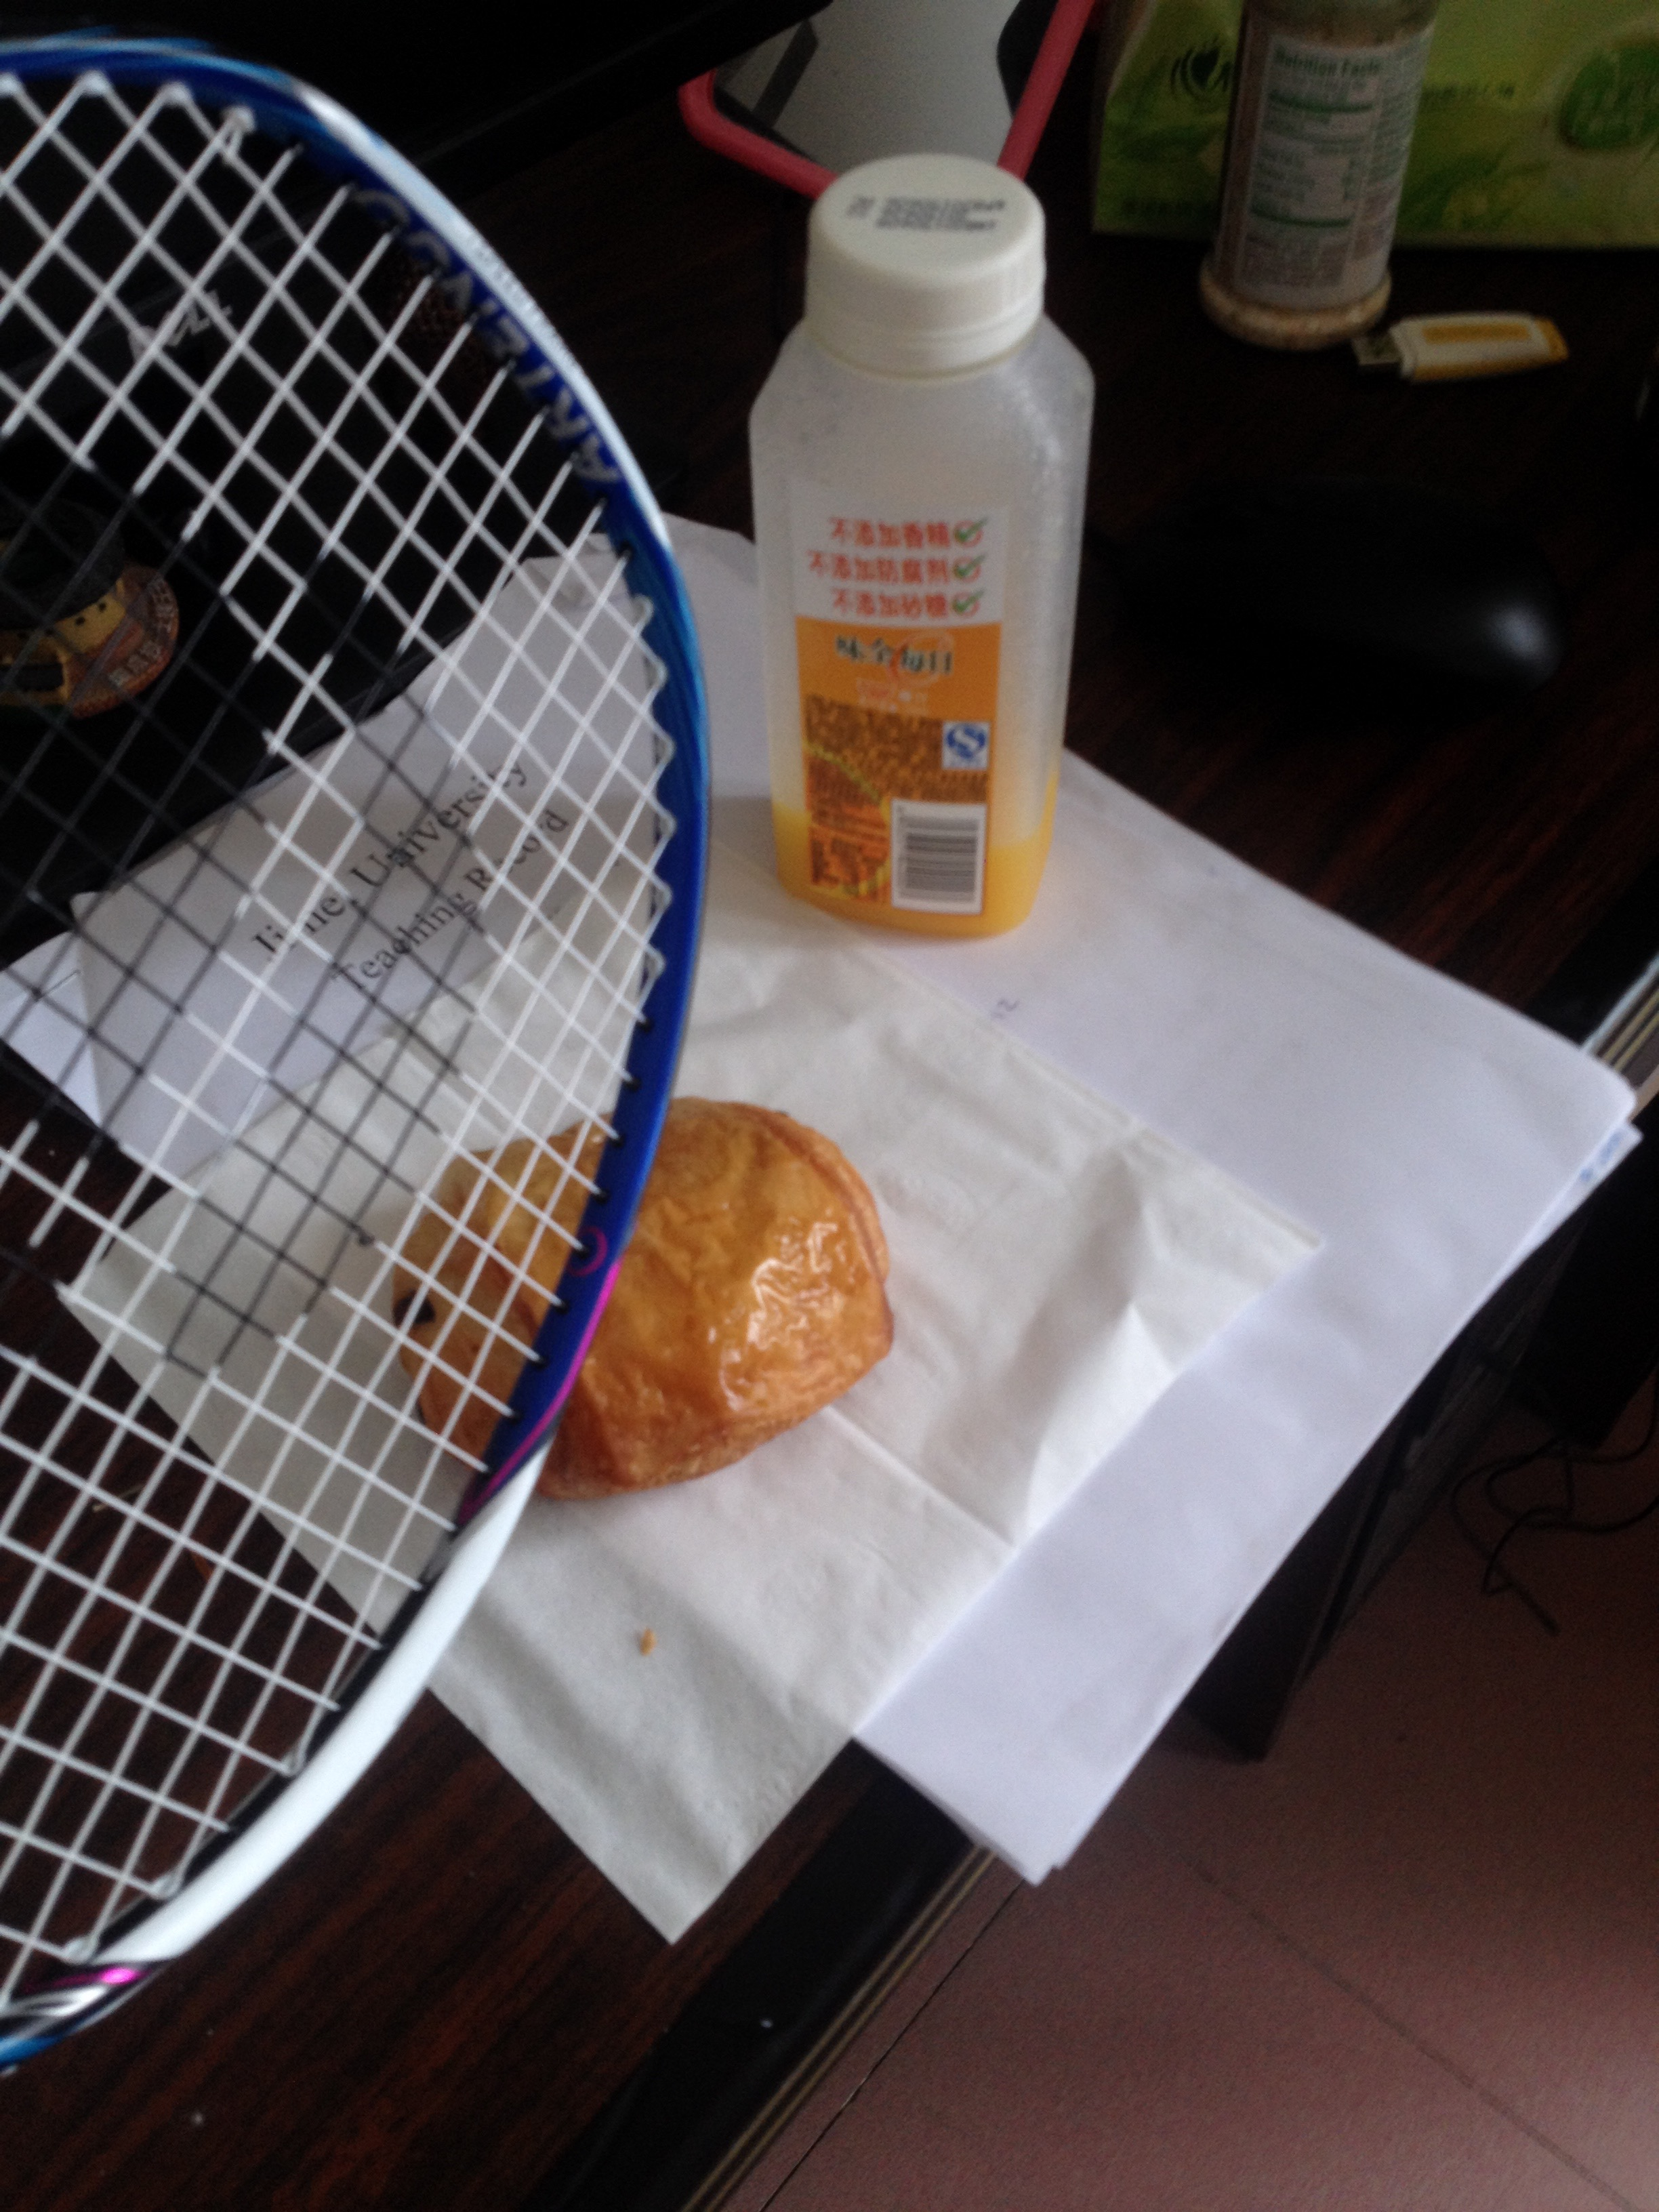 My racket likes getting a little snack while out and about in the city.